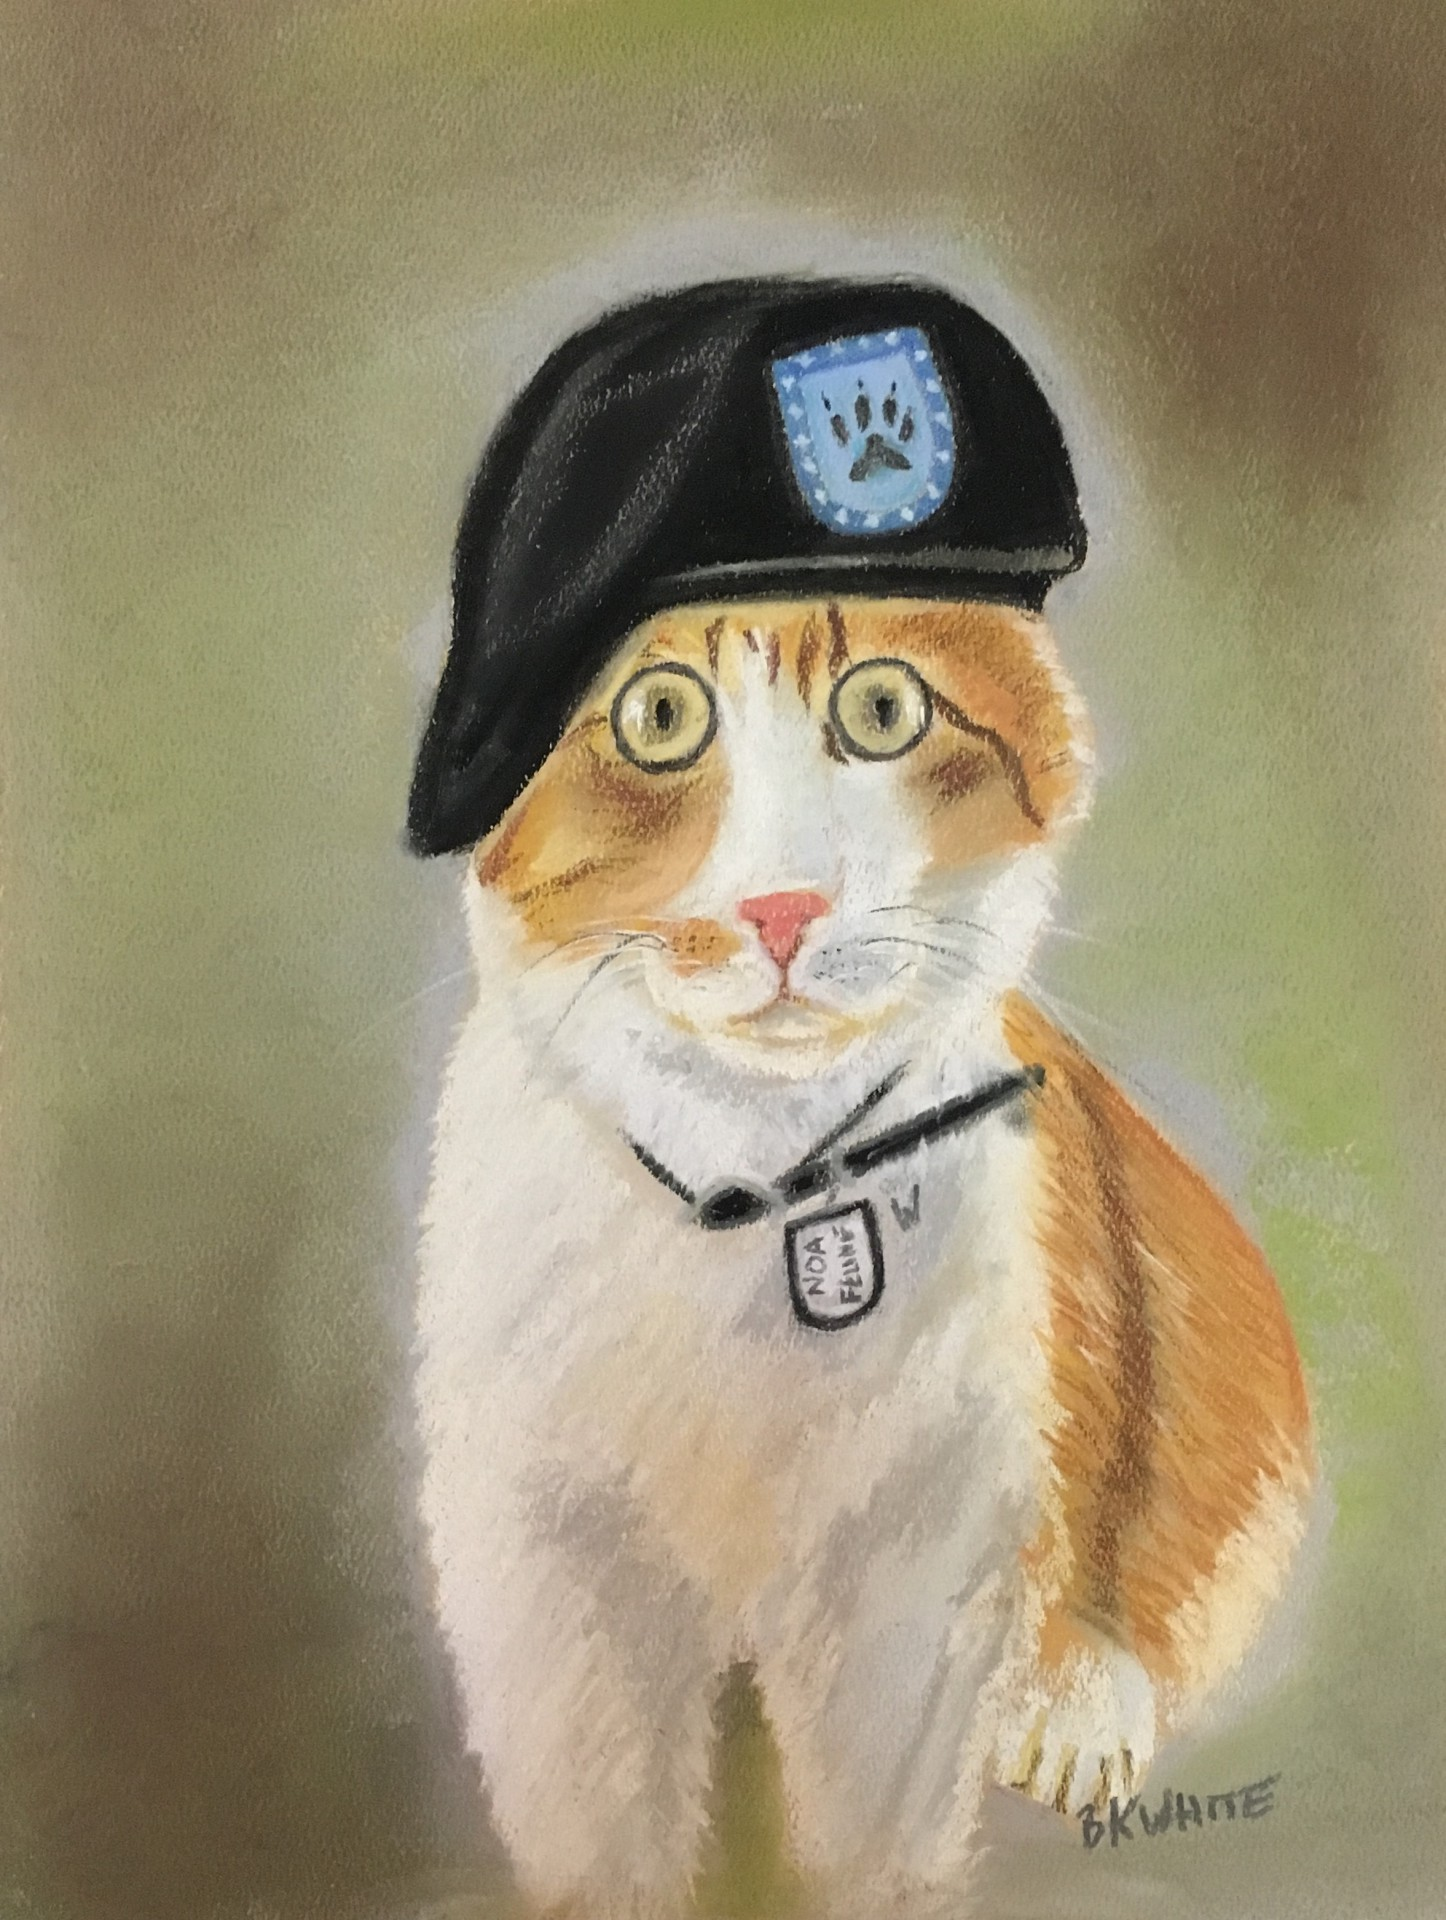 Pets, animal, Kitty, portrait, pastels, paintings, cats, army, hat